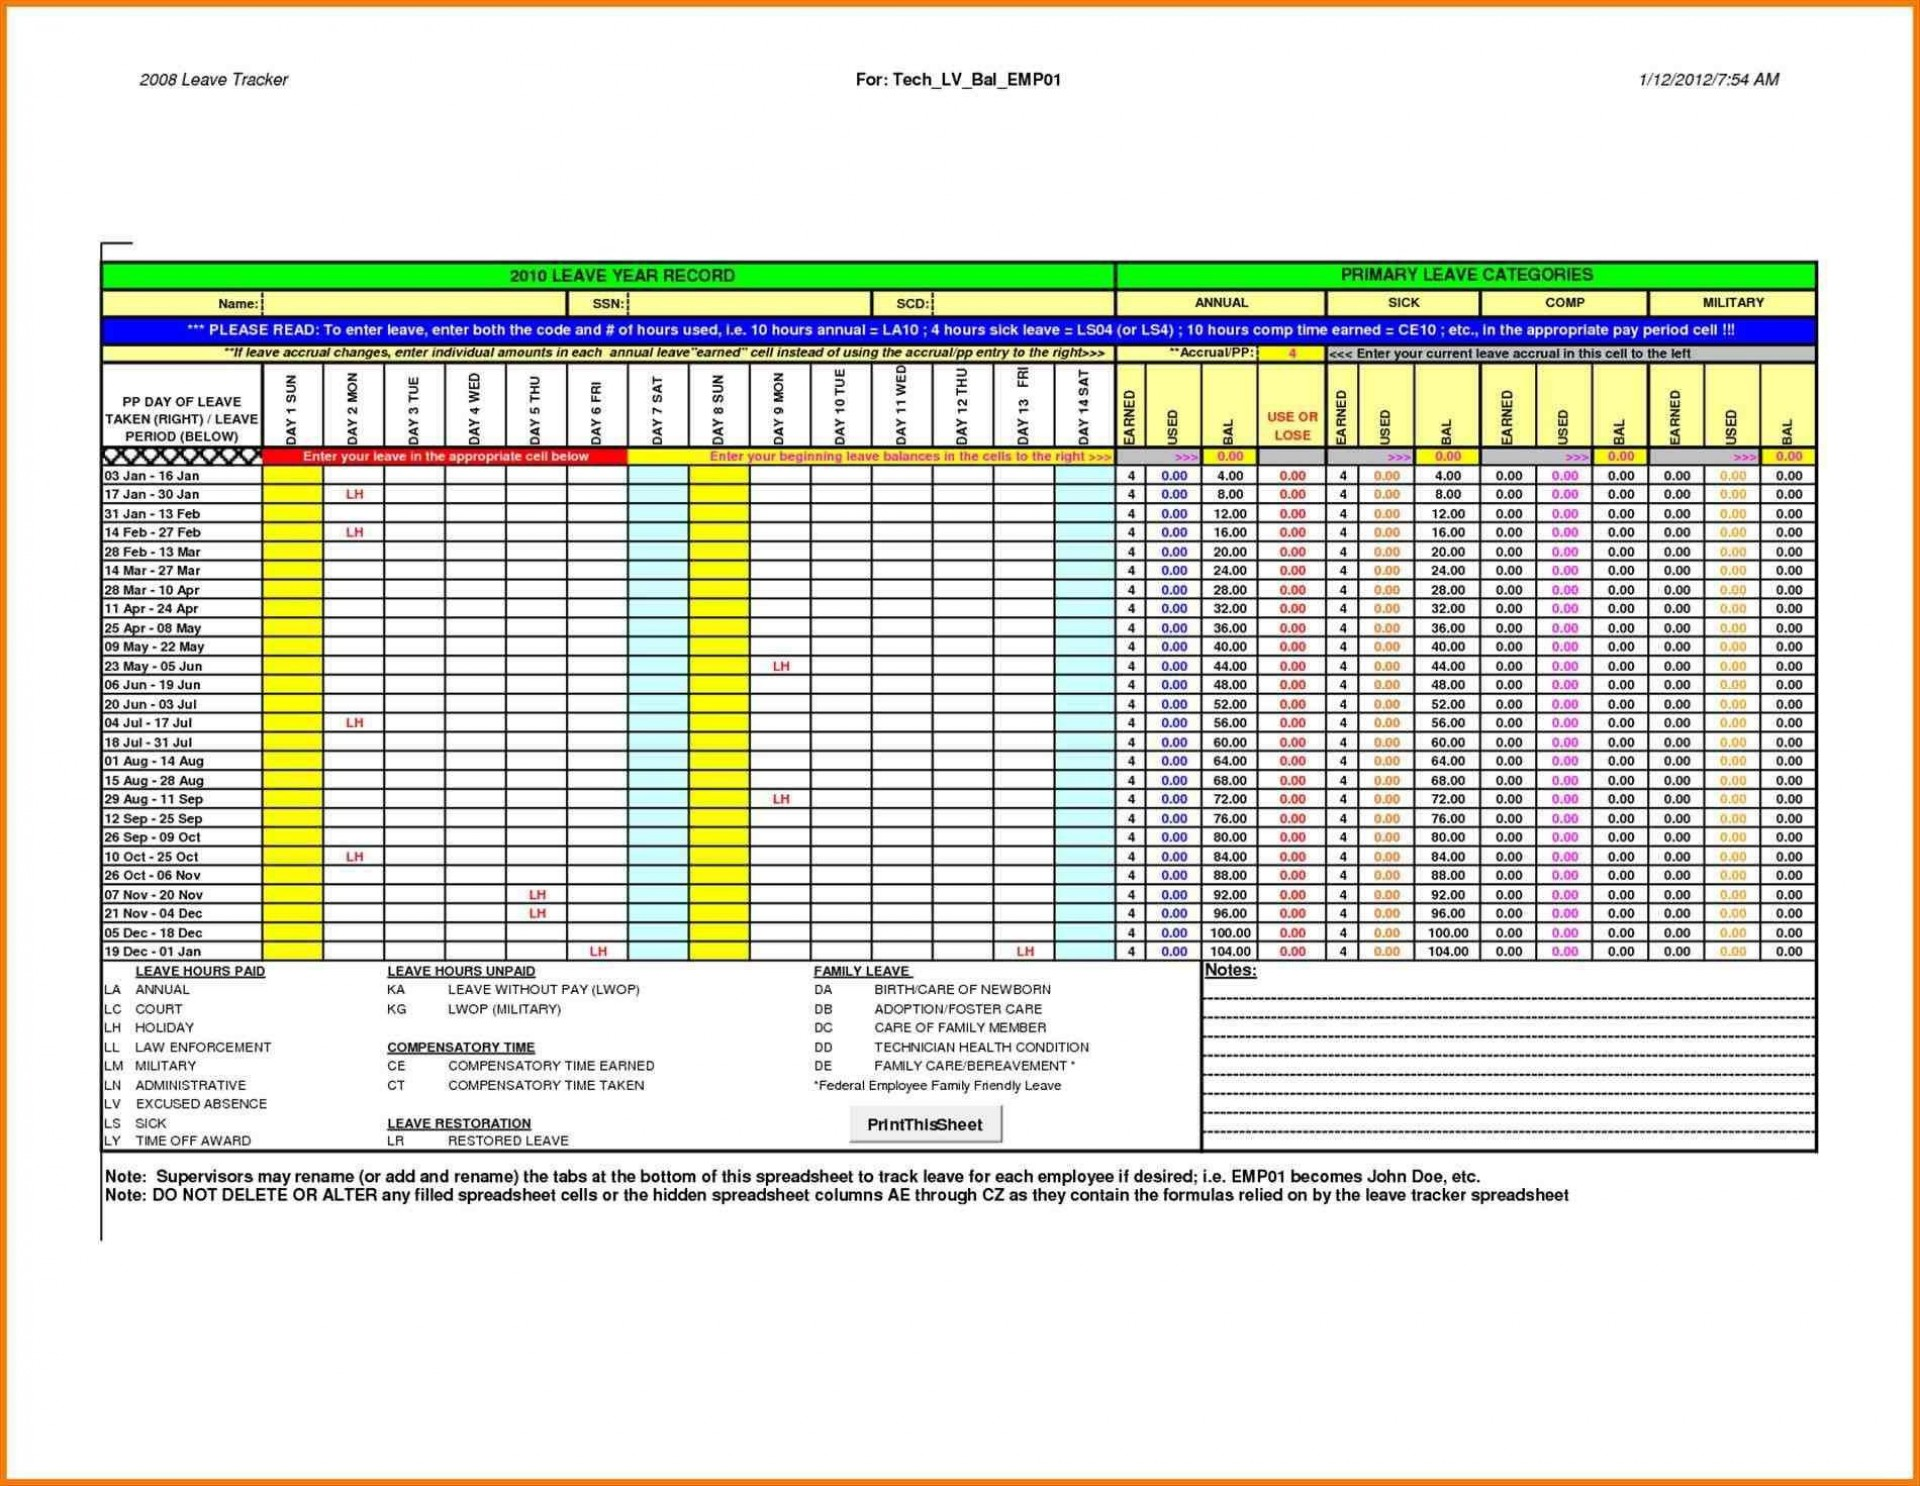 004 Incredible Employee Attendance Record Template Excel Sample  Free Download With Time1920